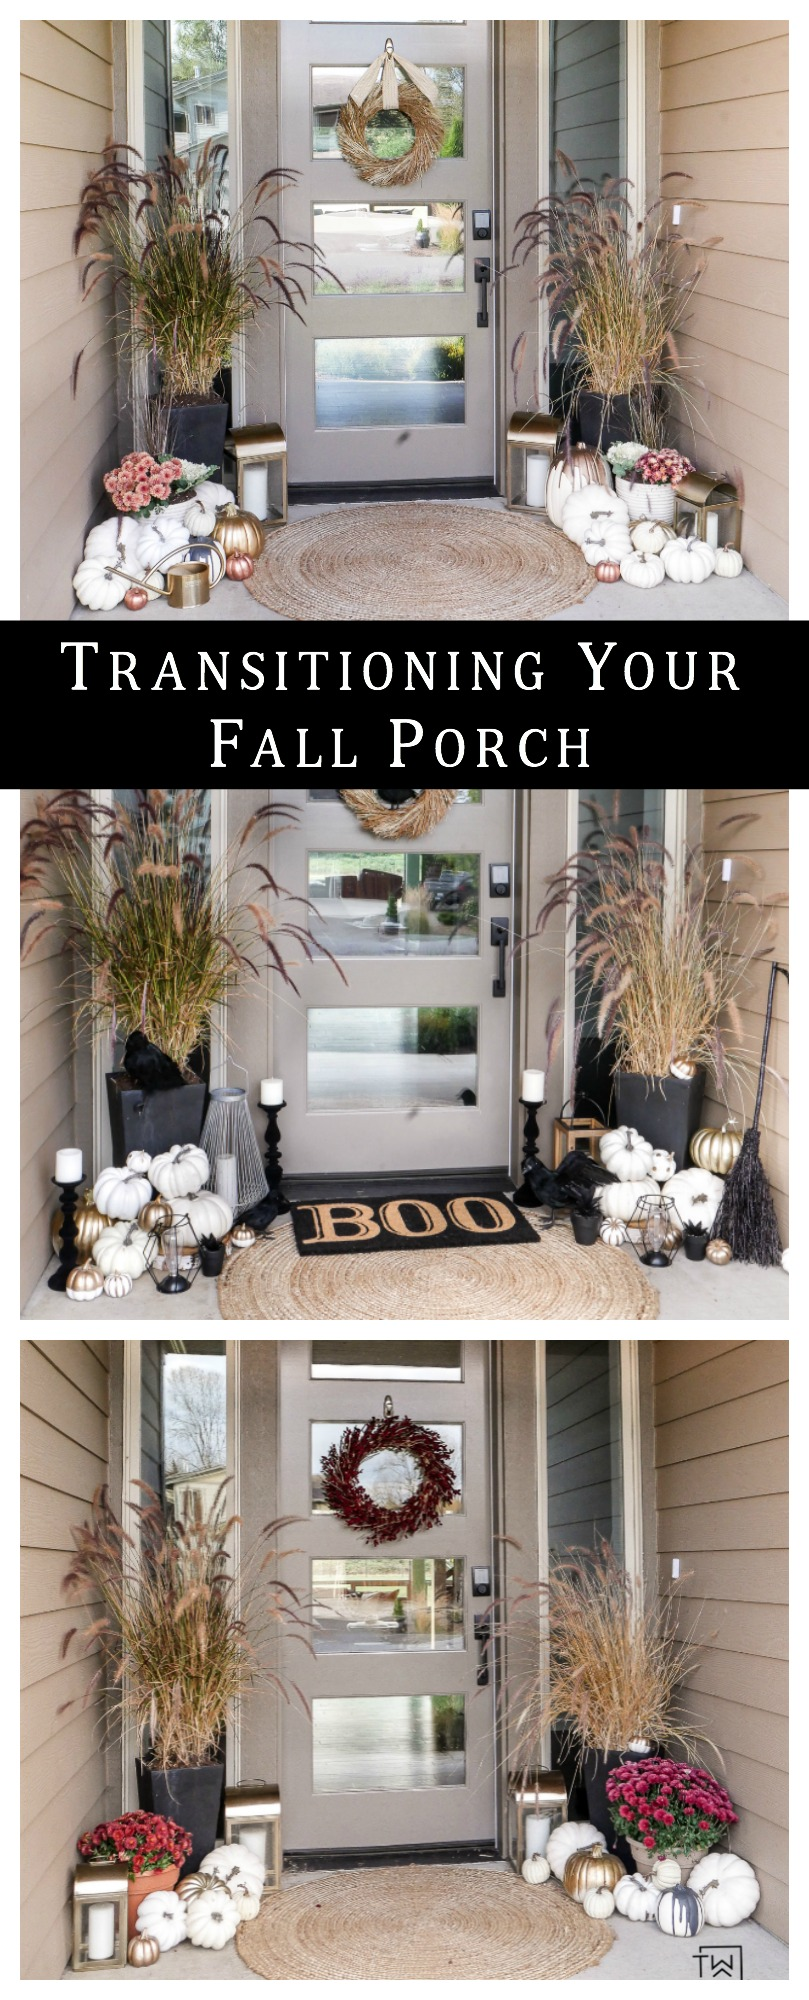 Learn how to easily transition your fall porch into early fall, Halloween and Thanksgiving by only changing a few items!